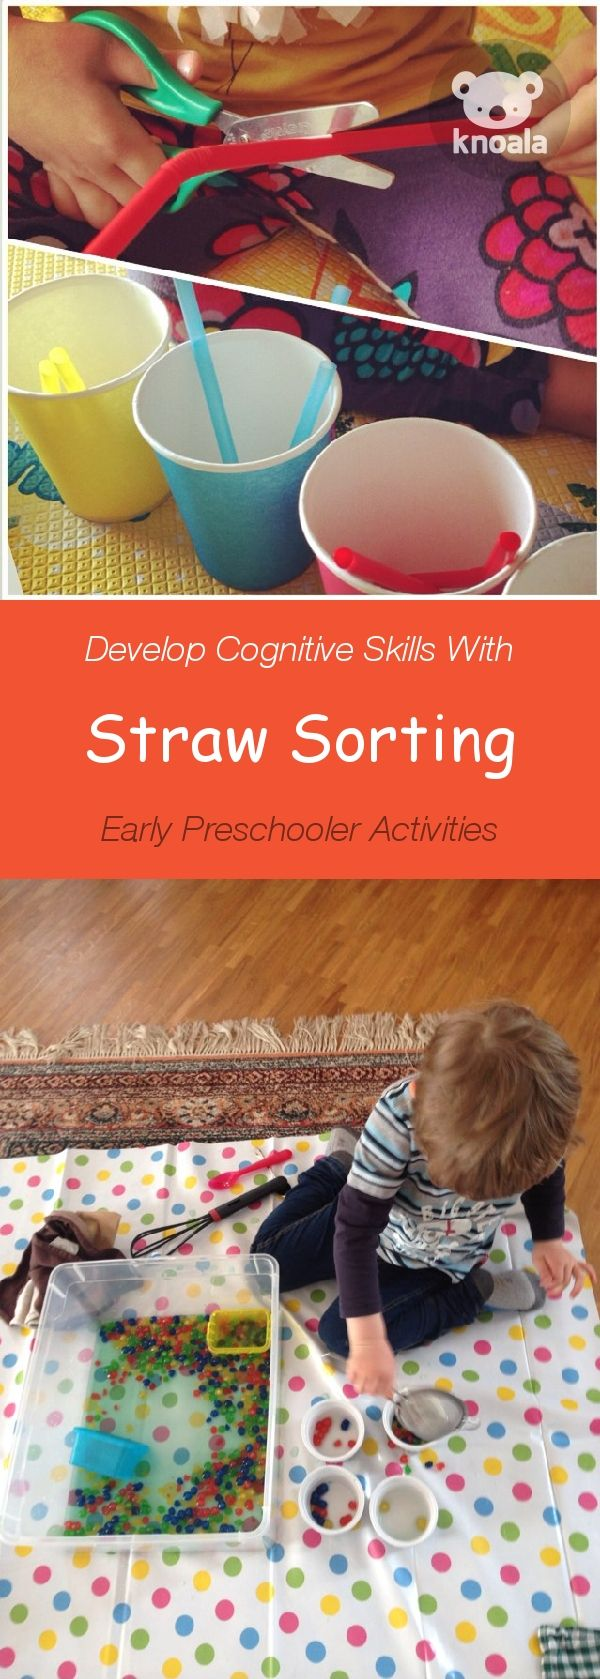 #Knoala Early Preschooler activity 'Straw Sorting' helps little ones develop Cognitive, Motor and Language skills. Click for simple instructions